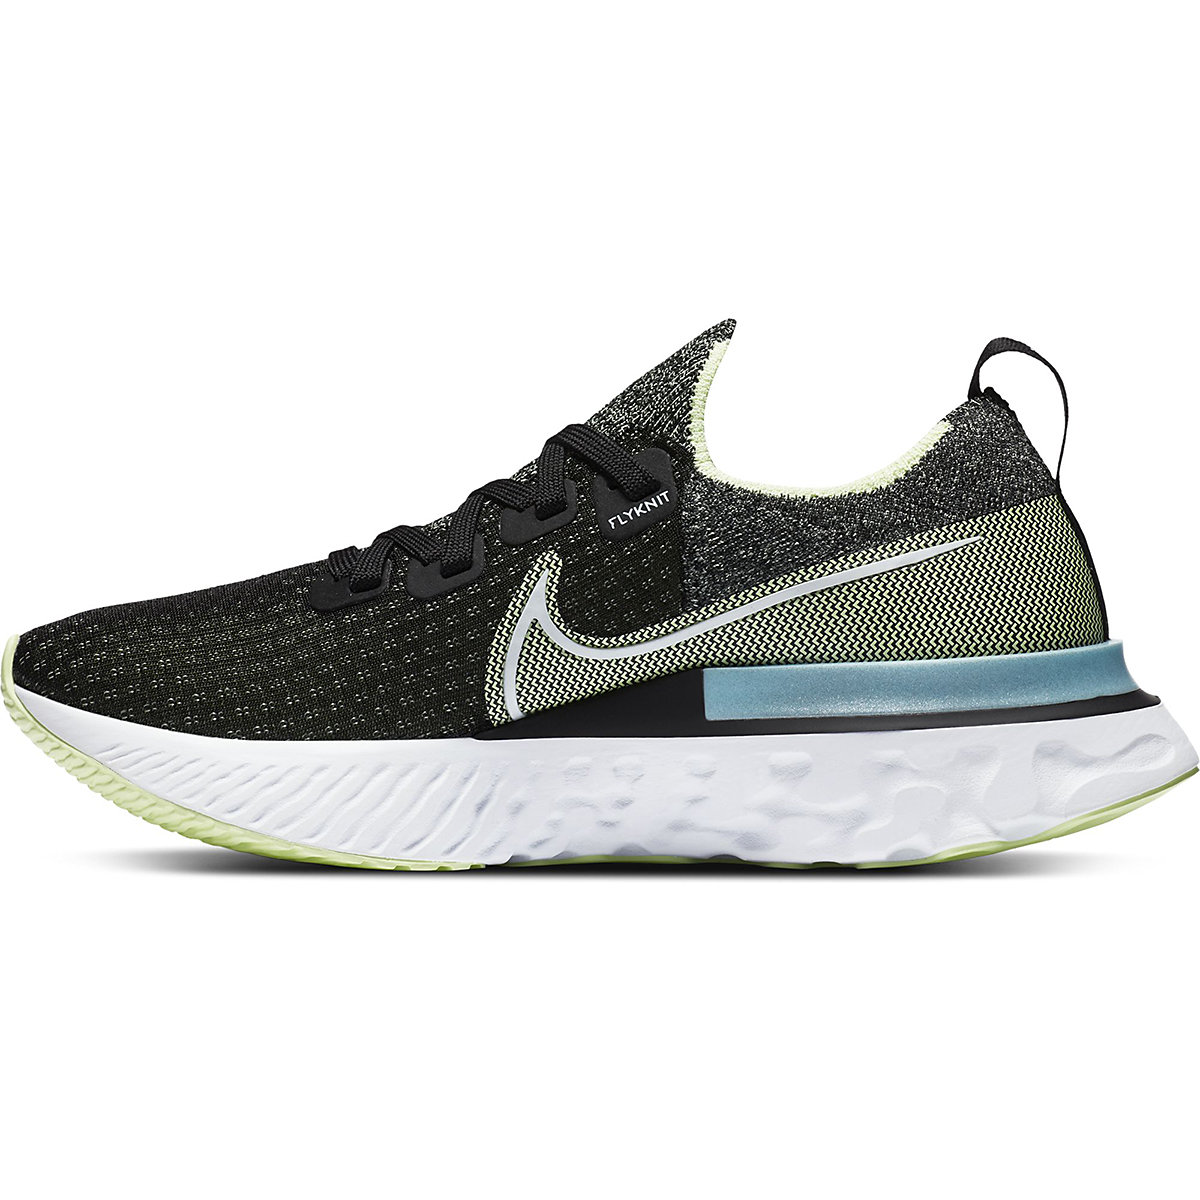 Women's Nike Nike React Infinity Run Flyknit Running Shoe - Color: Black/White-Barely Volt-Glacier Ice - Size: 5 - Width: Regular, Black/White-Barely Volt-Glacier Ice, large, image 2